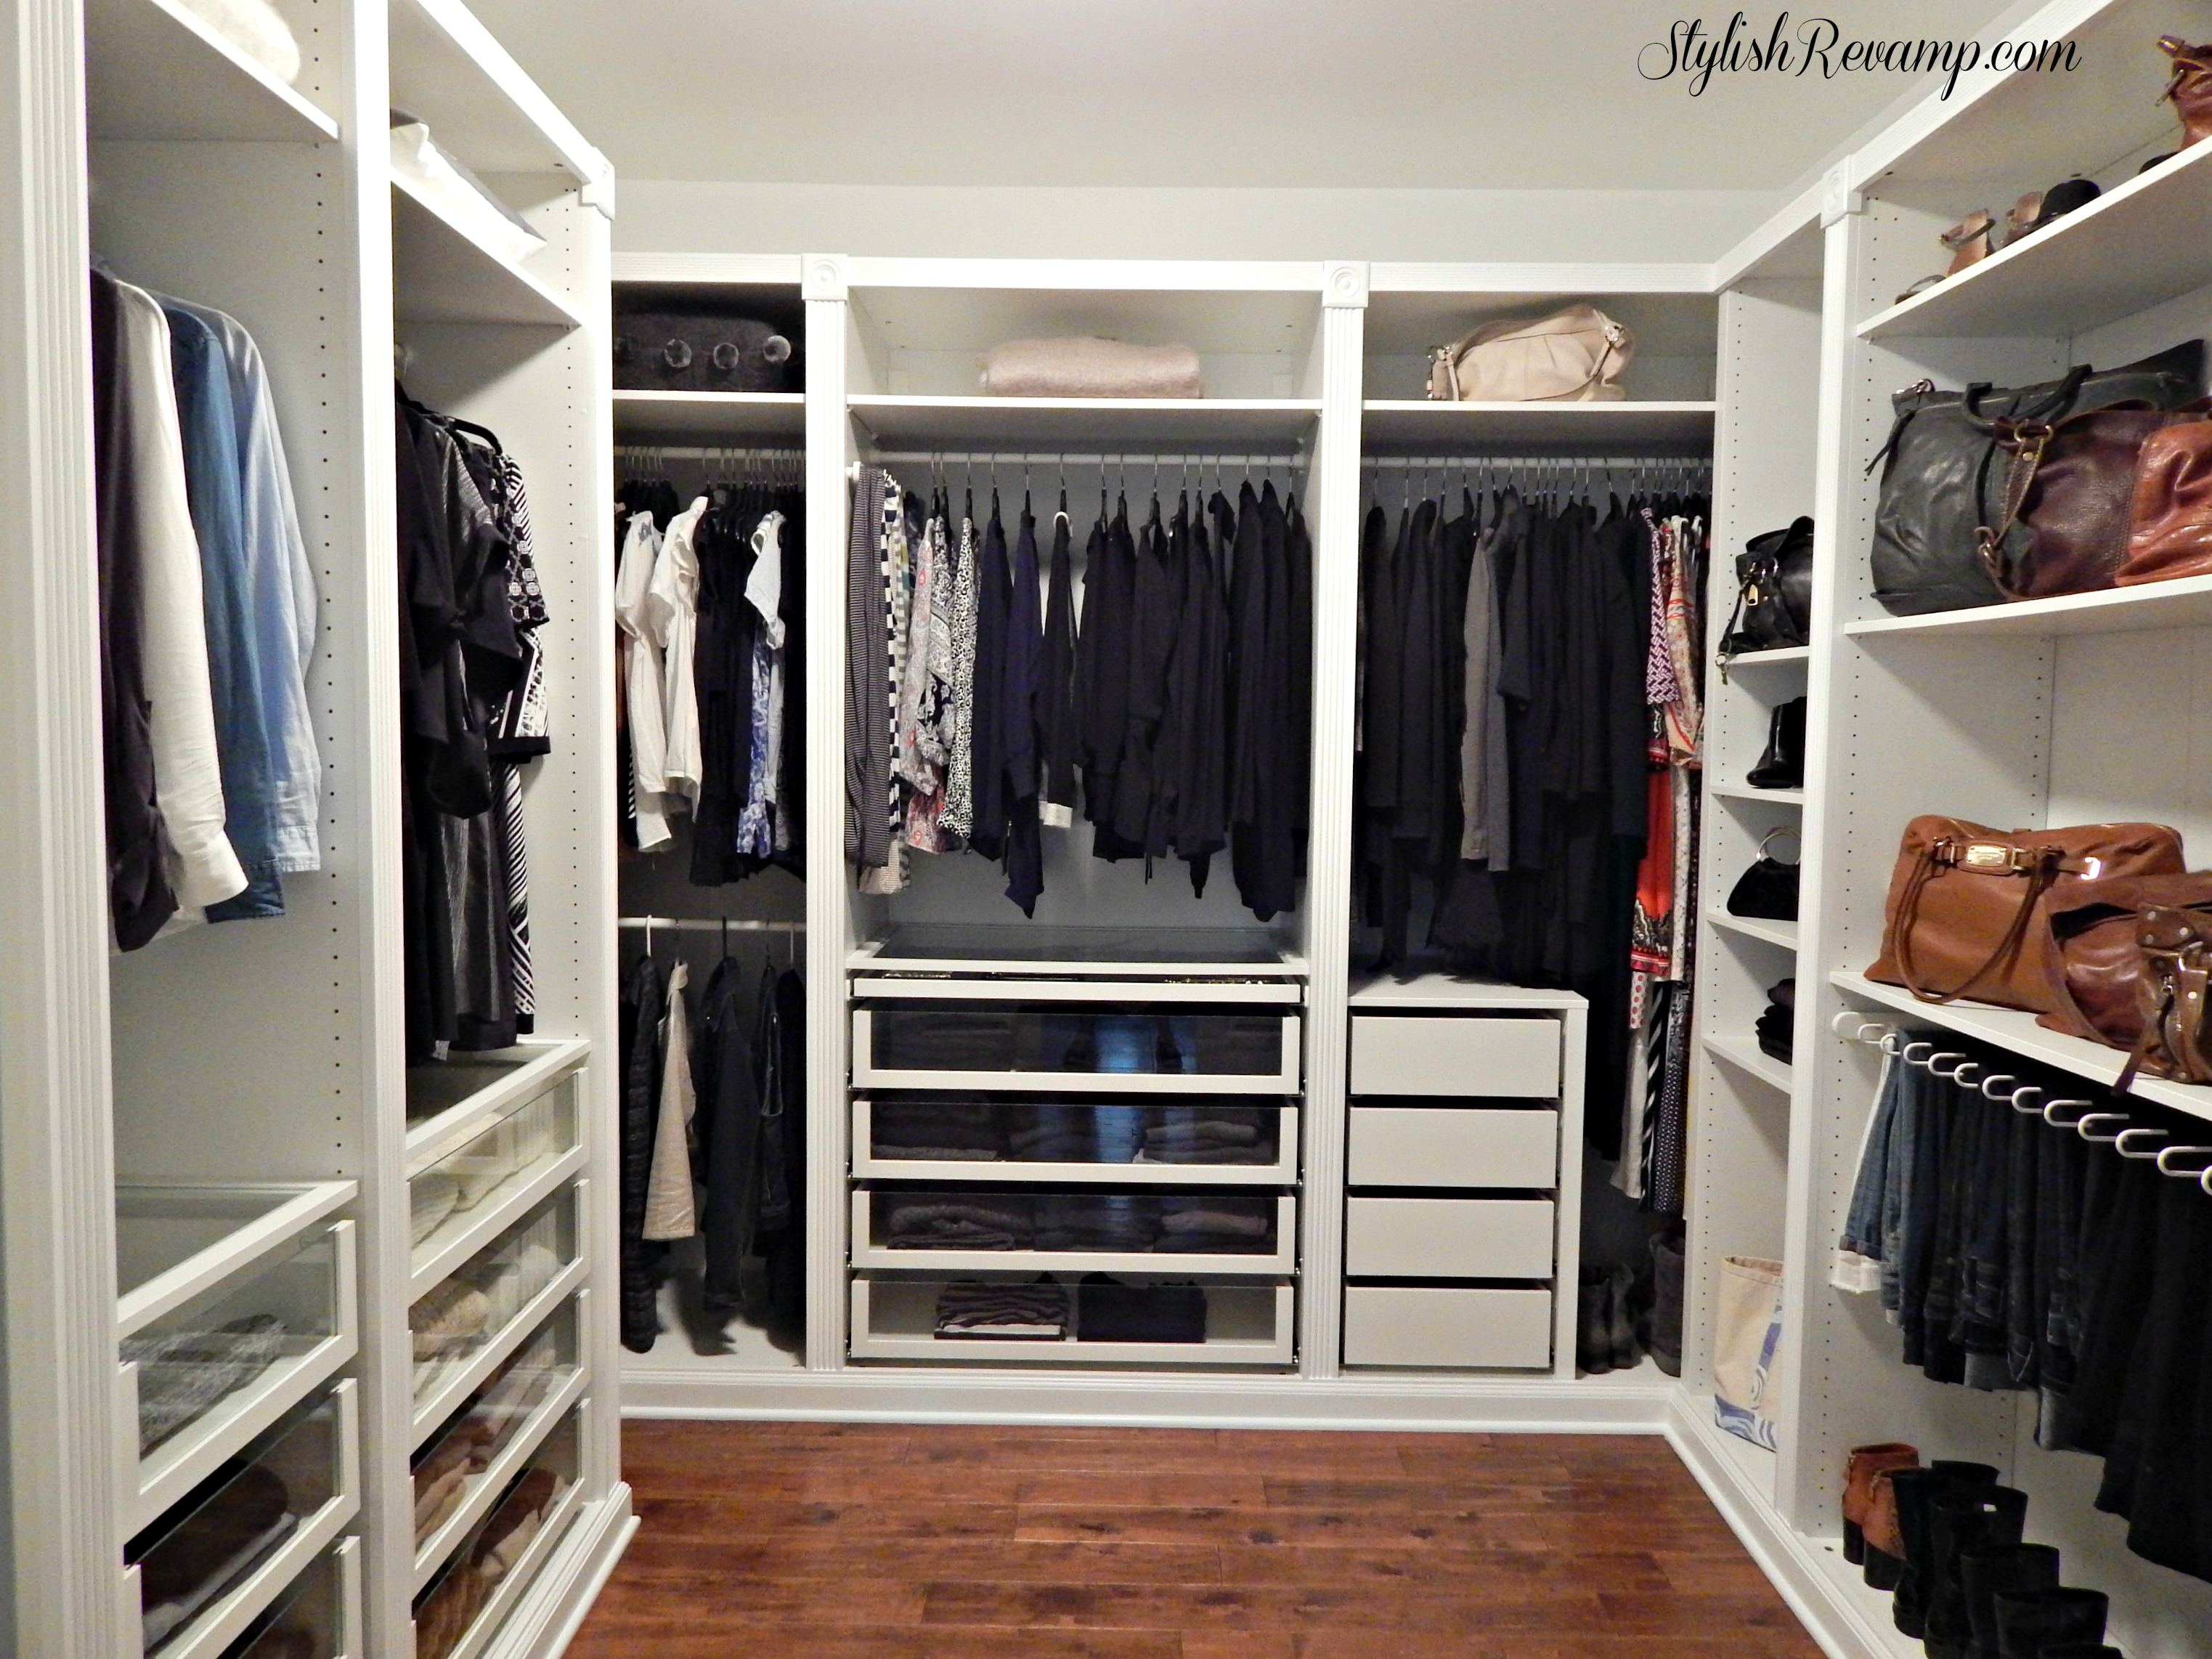 francisco wardrobe custom the pax fab lifestyle by ikea blogger review san closet wtfab popular what